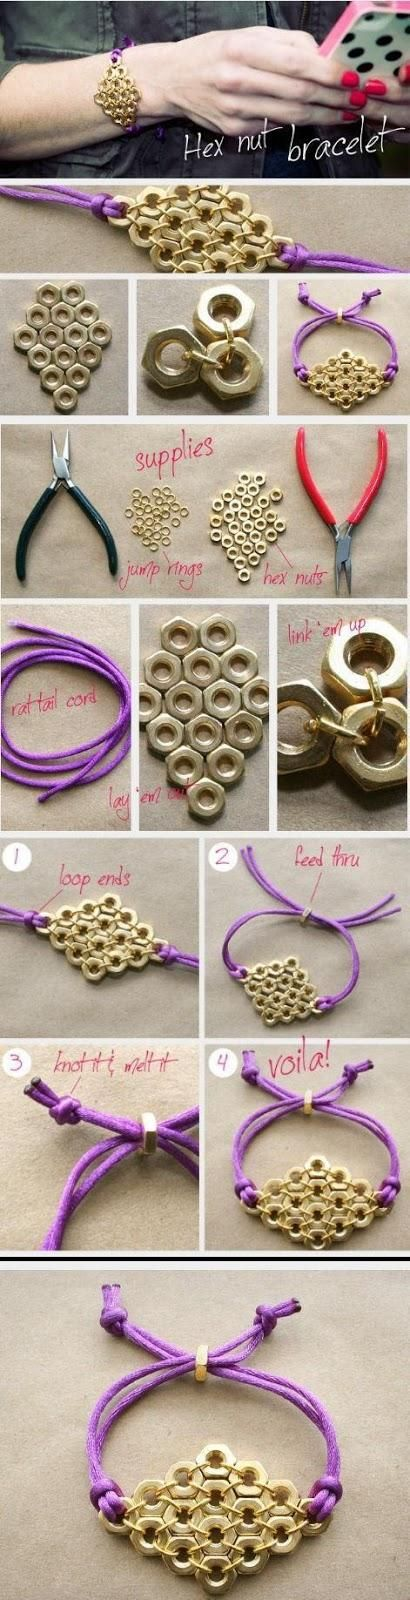 Make hex nut bracelet by your own:-  For making hex nut bracelet we need jump rings, hex nuts, rat-tail cord and a pliers.... click on picture to read more